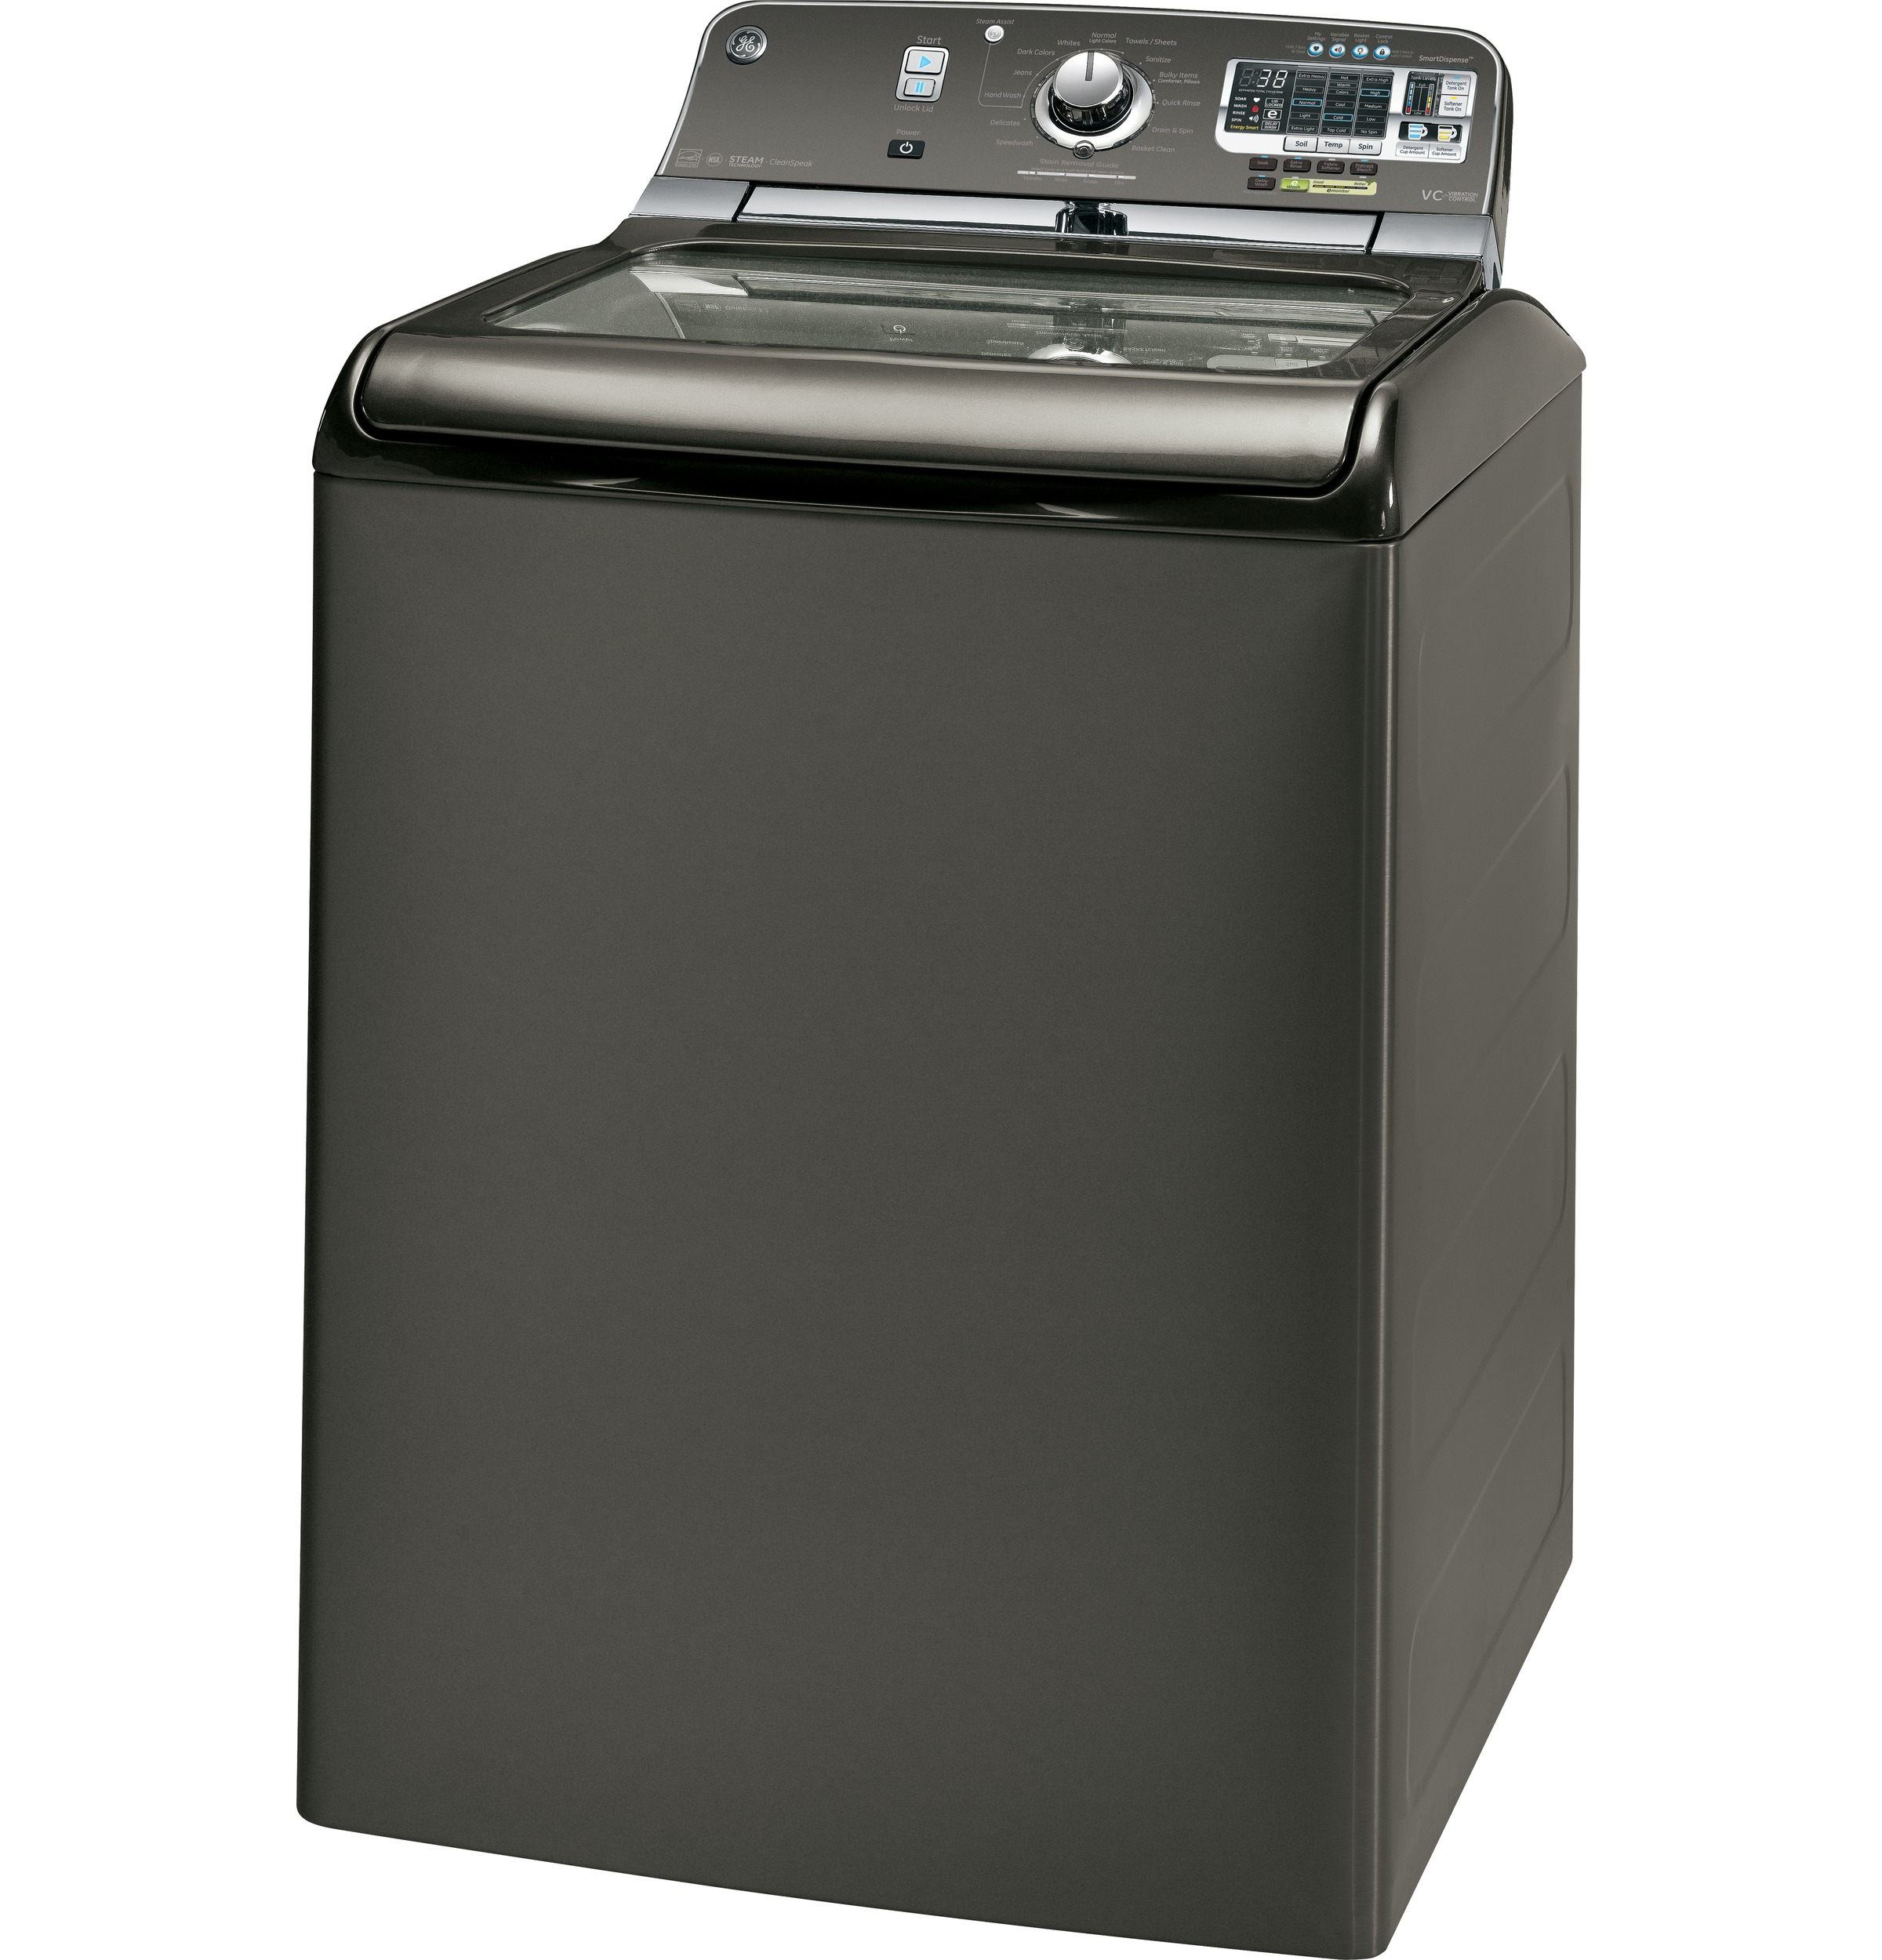 GE GTWS8655DMC 5.0 cu. ft. Top-Load Washer - Metallic Carbon